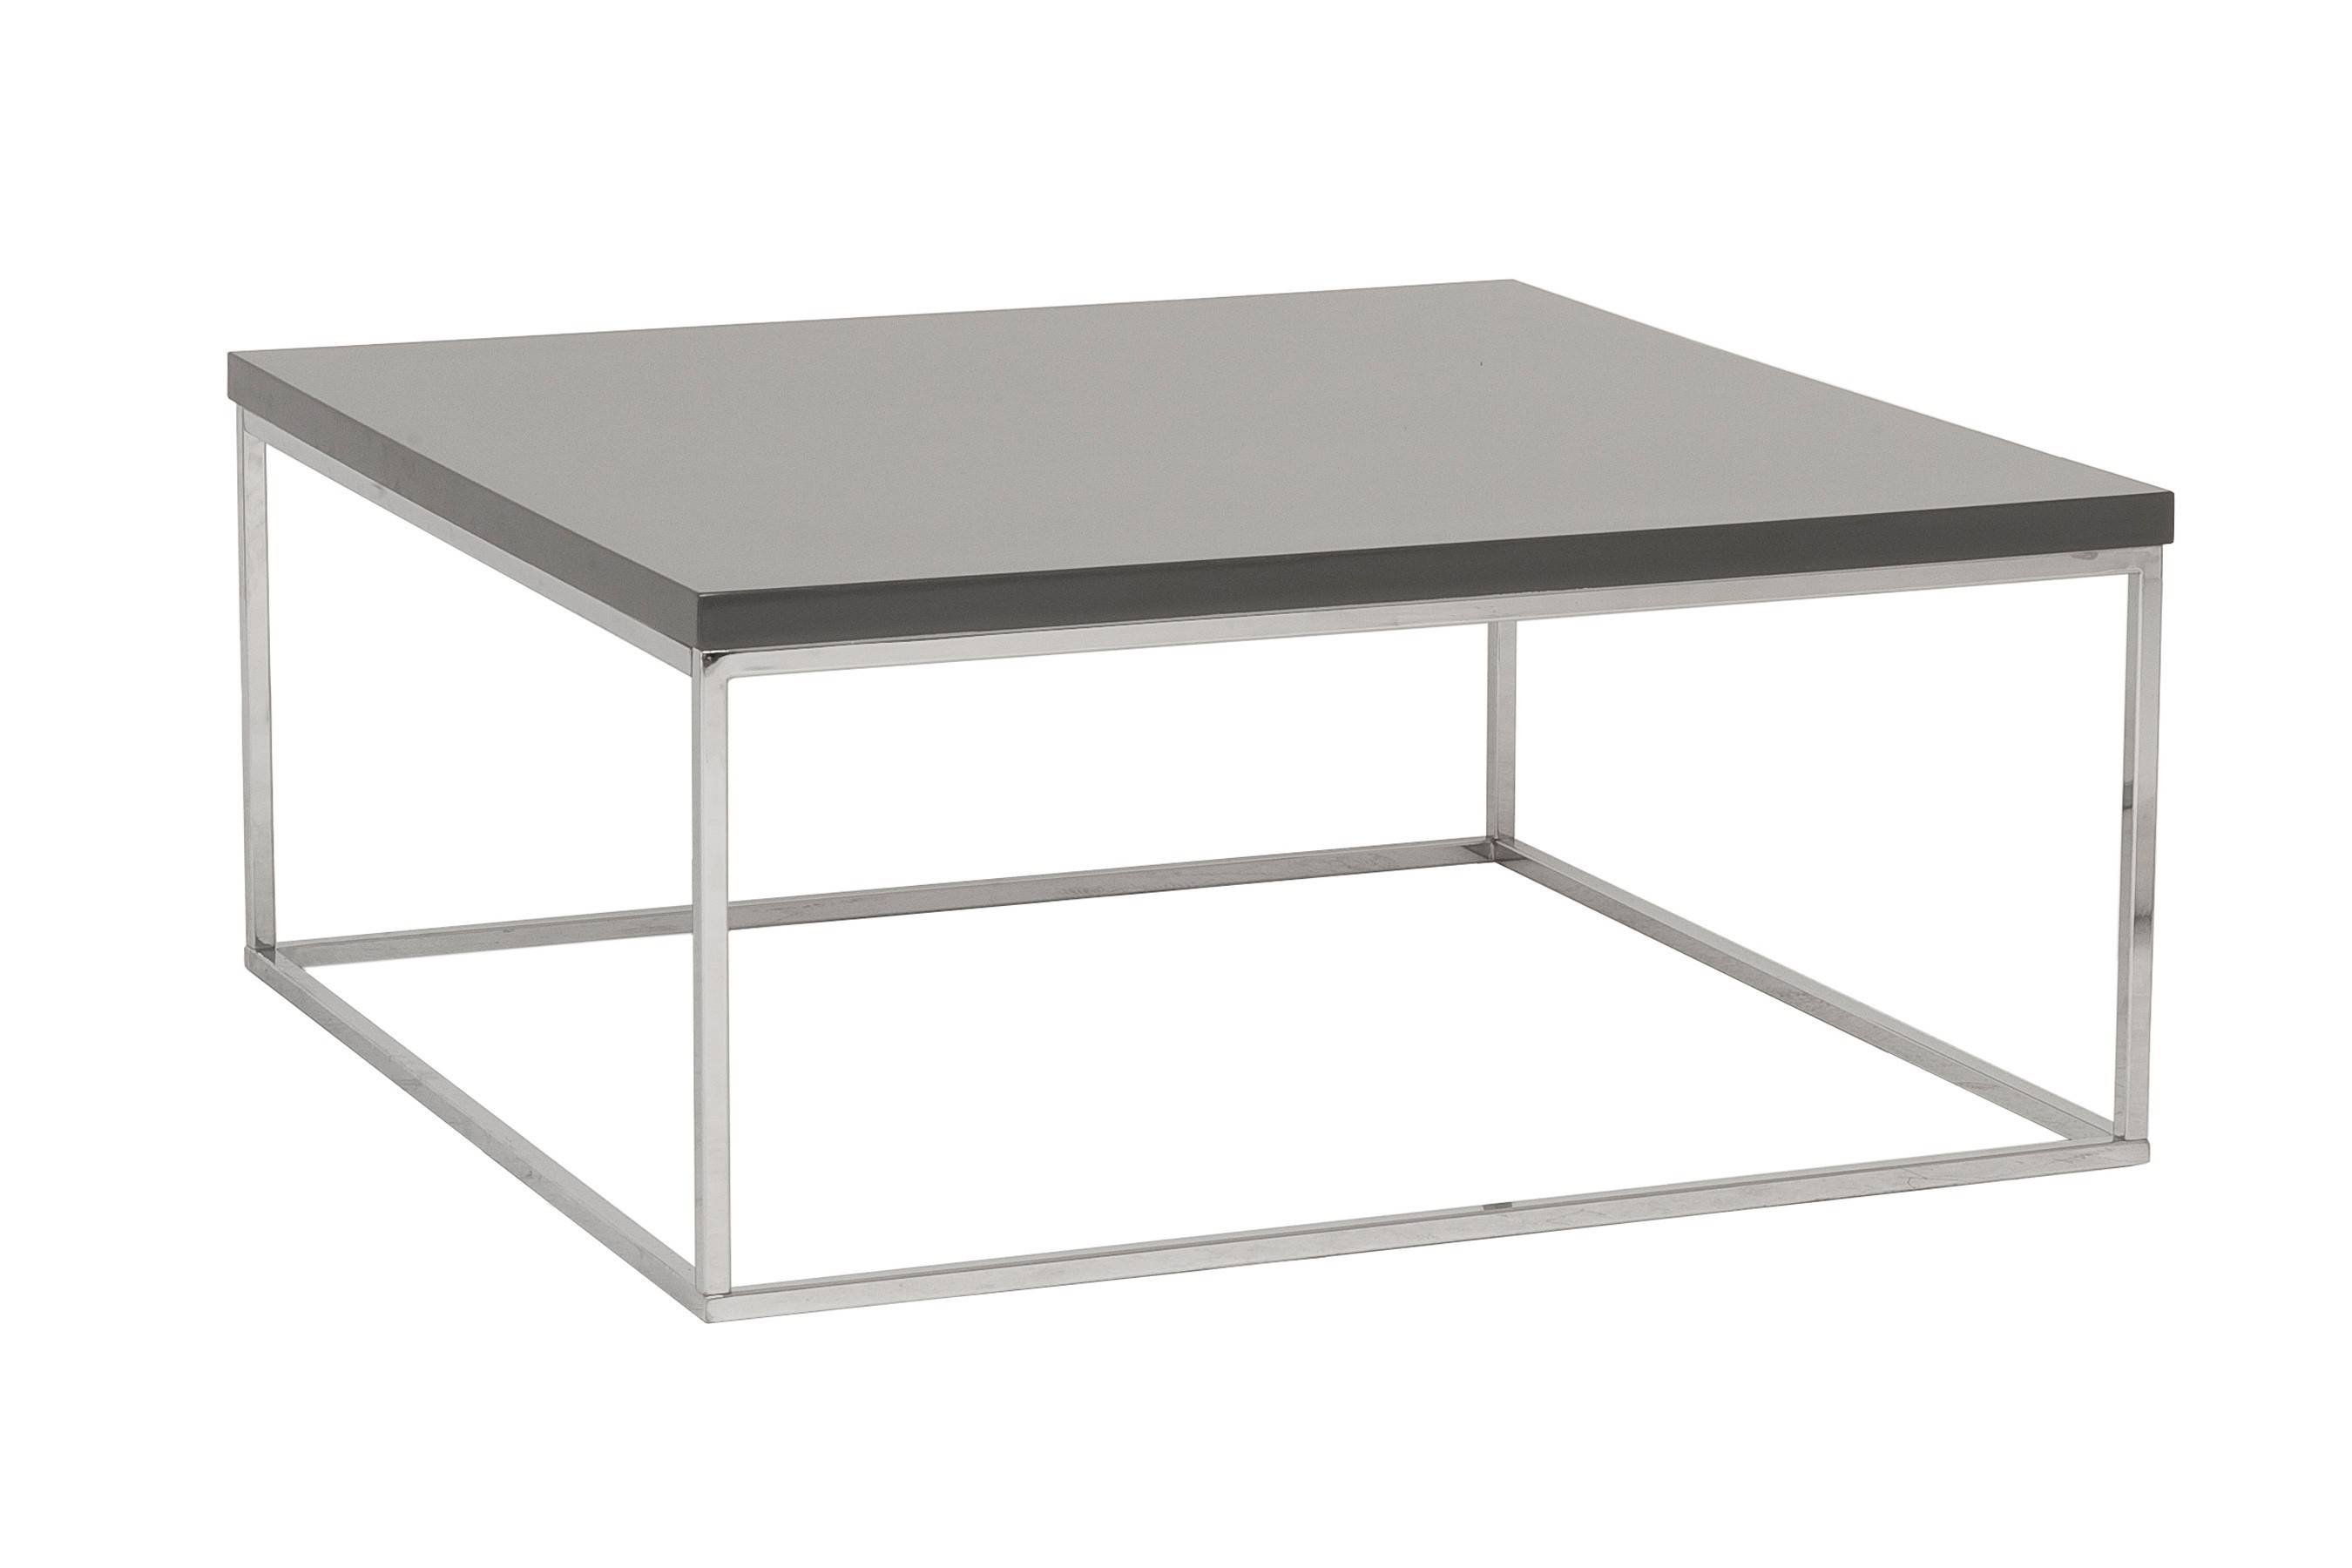 30 Best Collection of White Square Coffee Table